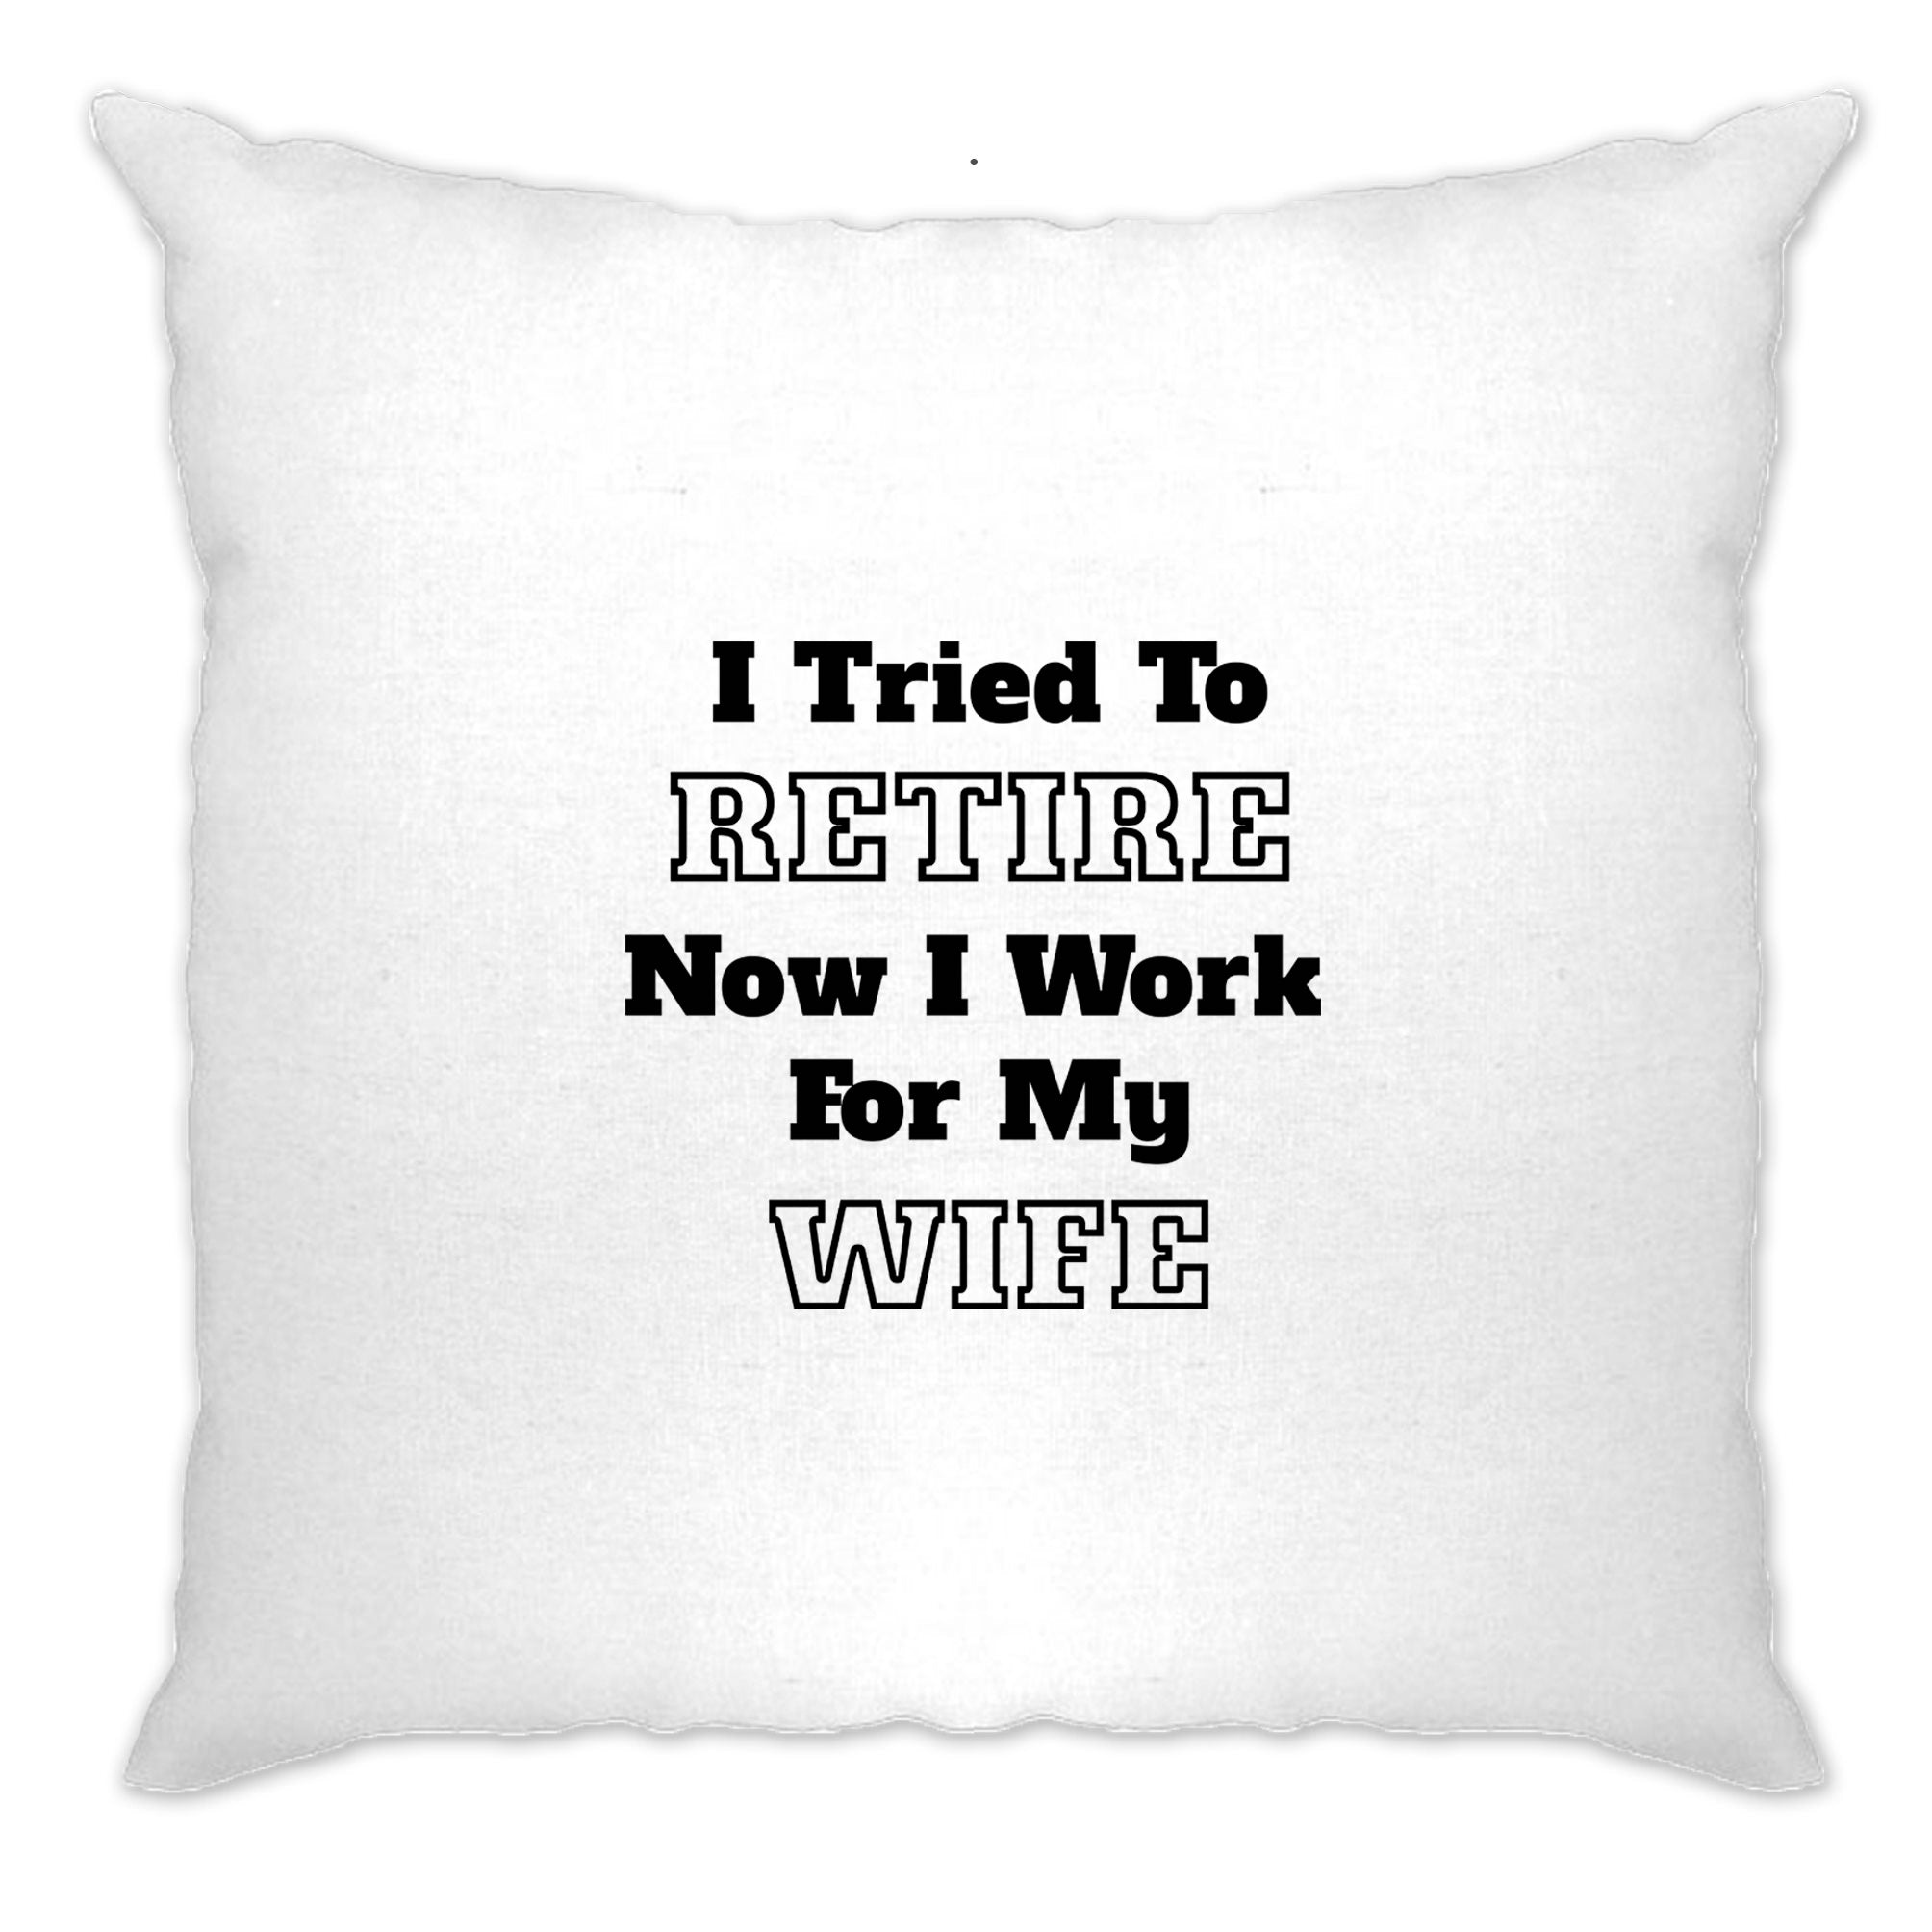 Funny Retirement Cushion Cover I Tried to Retire...